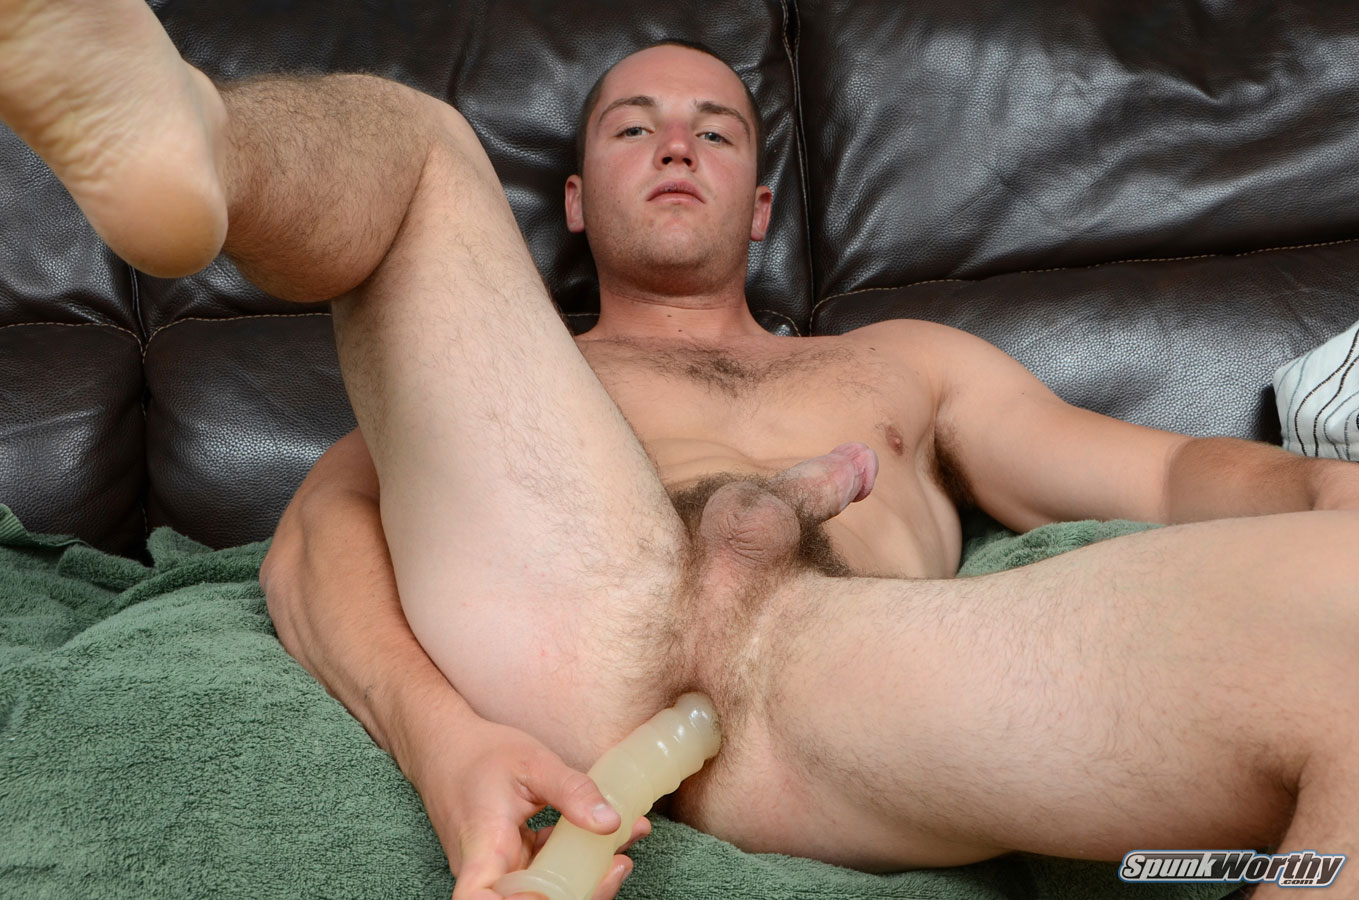 SpunkWorthy-Dean-Straight-Marine-Uses-A-Dildo-On-Hairy-Ass-Amateur-Gay-Porn-05 Ripped Marine Fucks His Striaght Hairy Ass With A Dildo